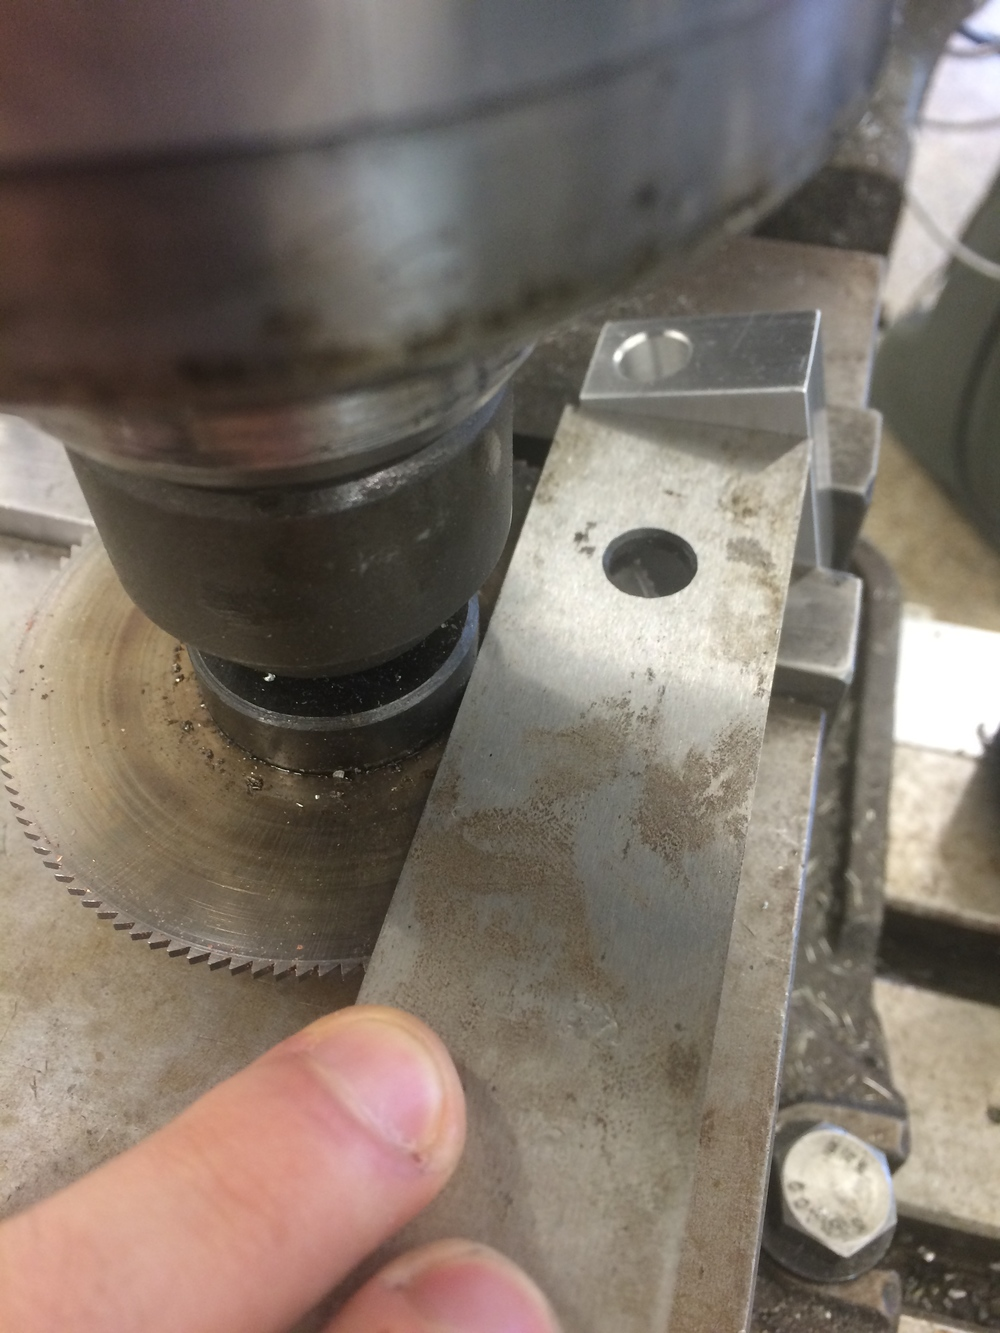 Making sure the fixture for the milling cutter wont crash into the work